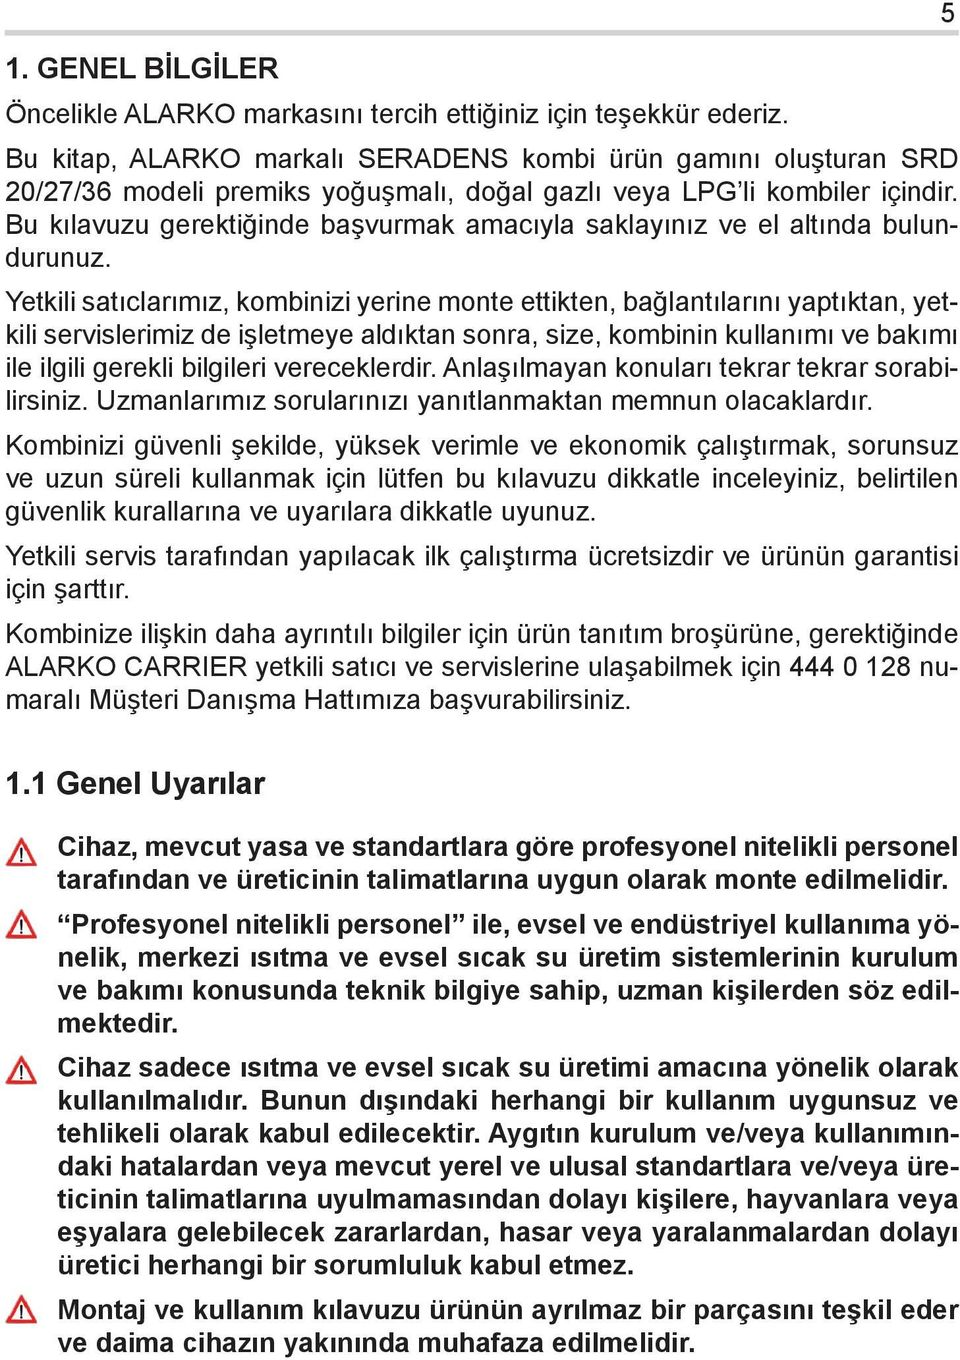 Bu kitap, ALARKO markalı SERADENS INSTALLATION kombi INSTRUCTIONS ürün gamını oluşturan SRD 20/27/36 The When connection modeli connecting premiks to gas boiler yoğuşmalı, supply to must gas doğal be